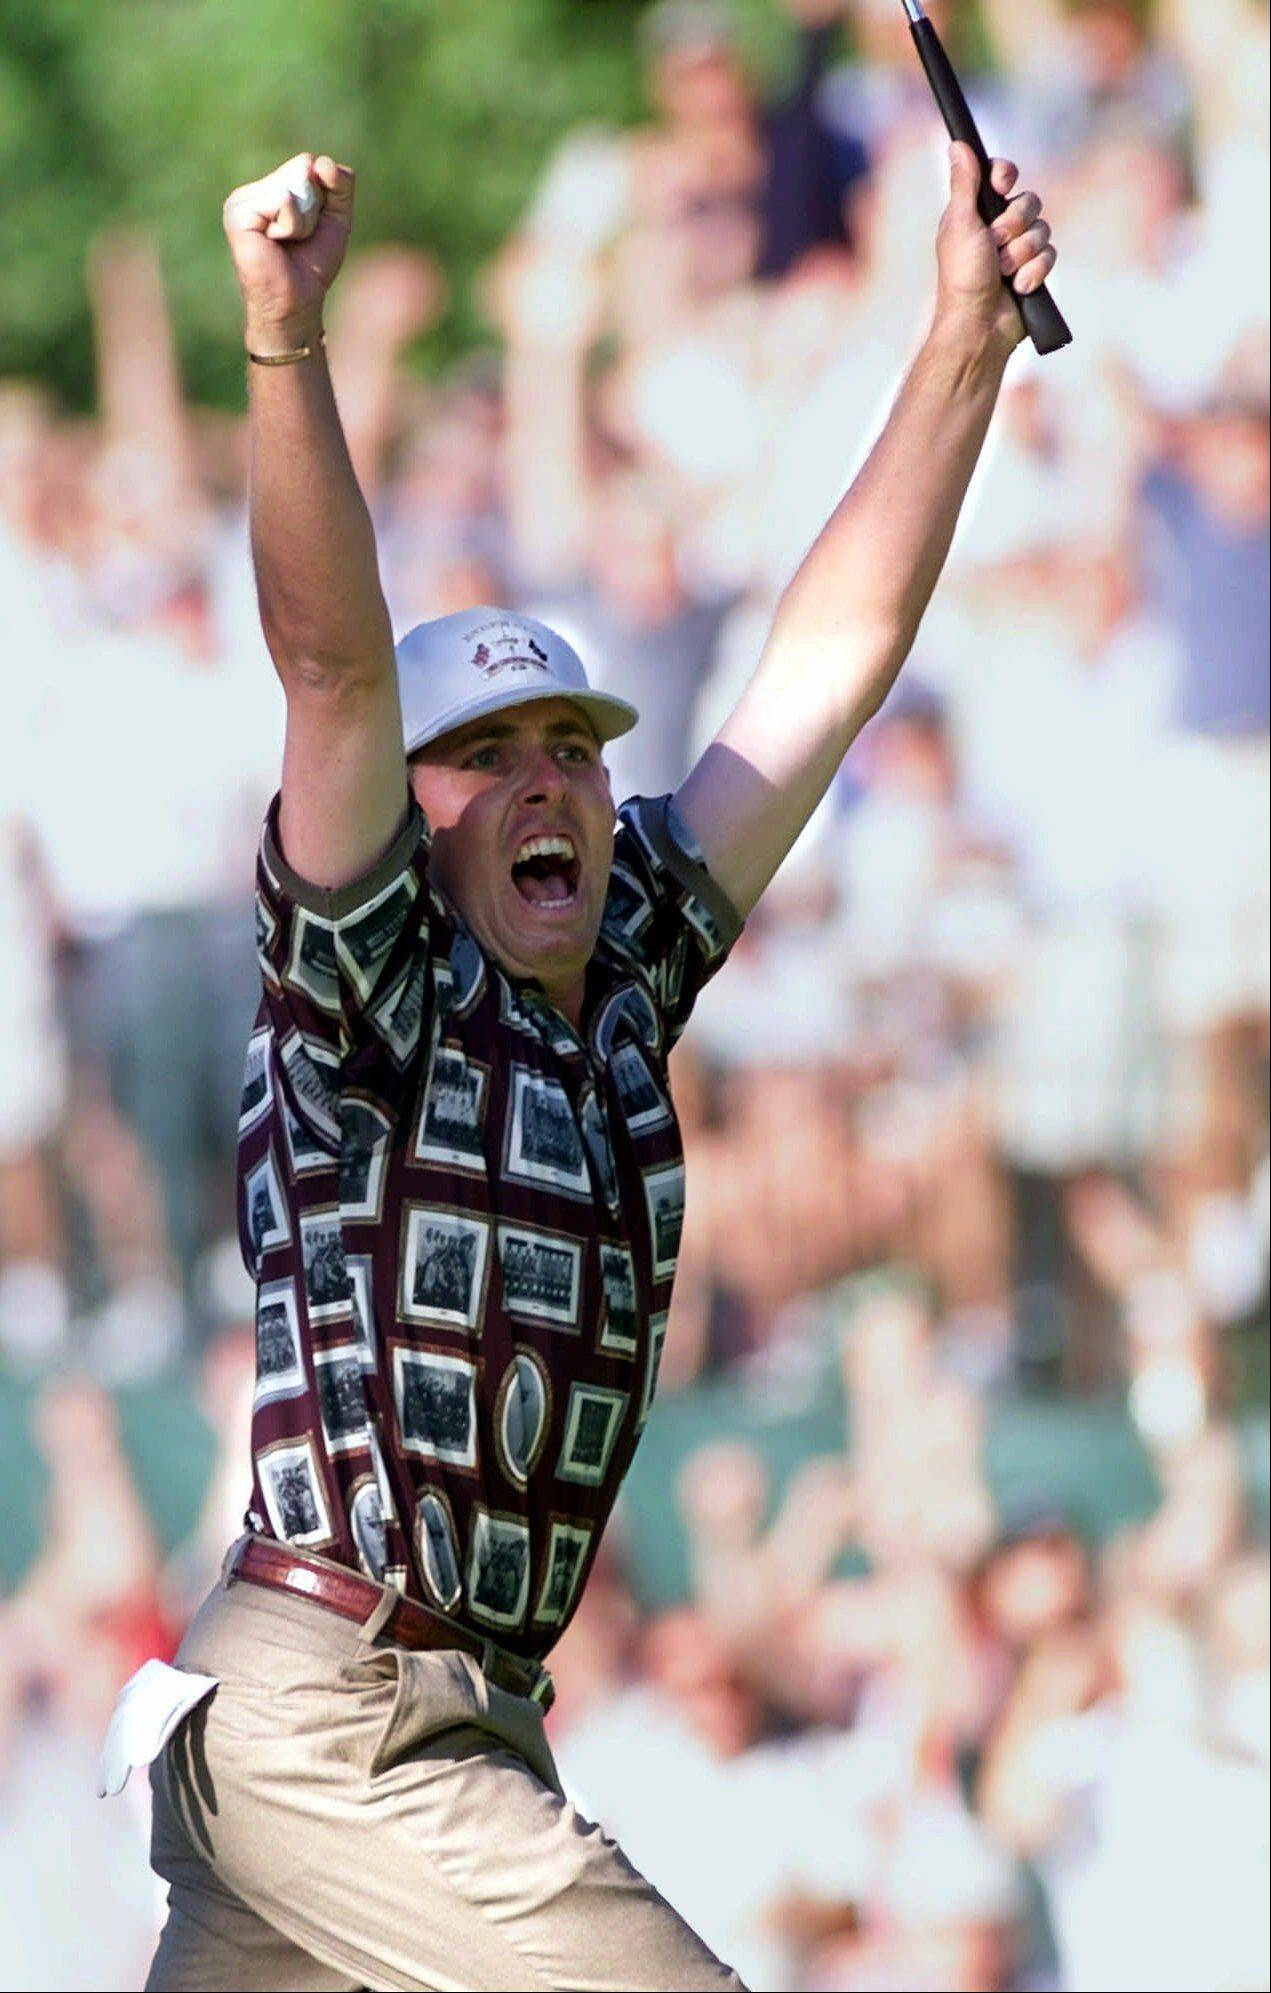 U.S. Ryder Cup player Justin Leonard celebrates after sinking his putt on the 17th hole of his final round match Sunday, Sept. 26, 1999 in Brookline, Mass. Leonard won the hole clinching the Ryder Cup for the U.S. The Americans were criticized for excessive celebration in reaction of their 1999 victory.